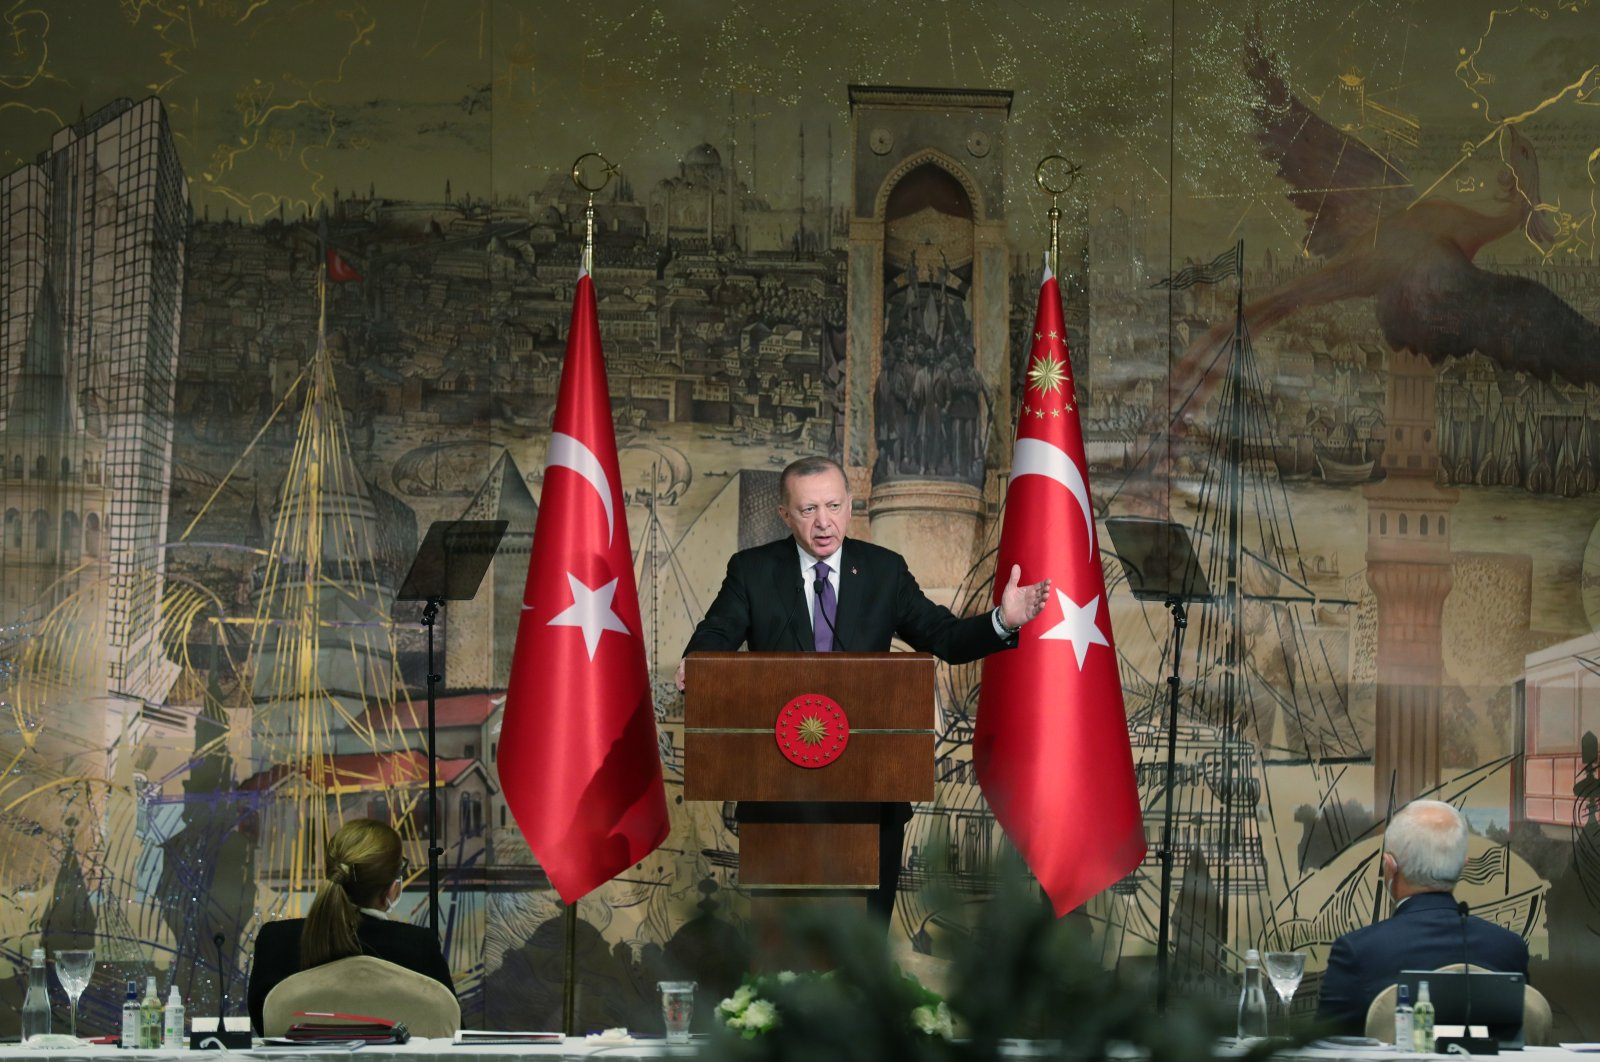 President Recep Tayyip Erdoğan addresses Foreign Economic Relations Board (DEIK) members at a meeting in the Dolmabahçe Presidential Complex, Istanbul, Turkey, Jan. 15, 2021. (AA Photo)